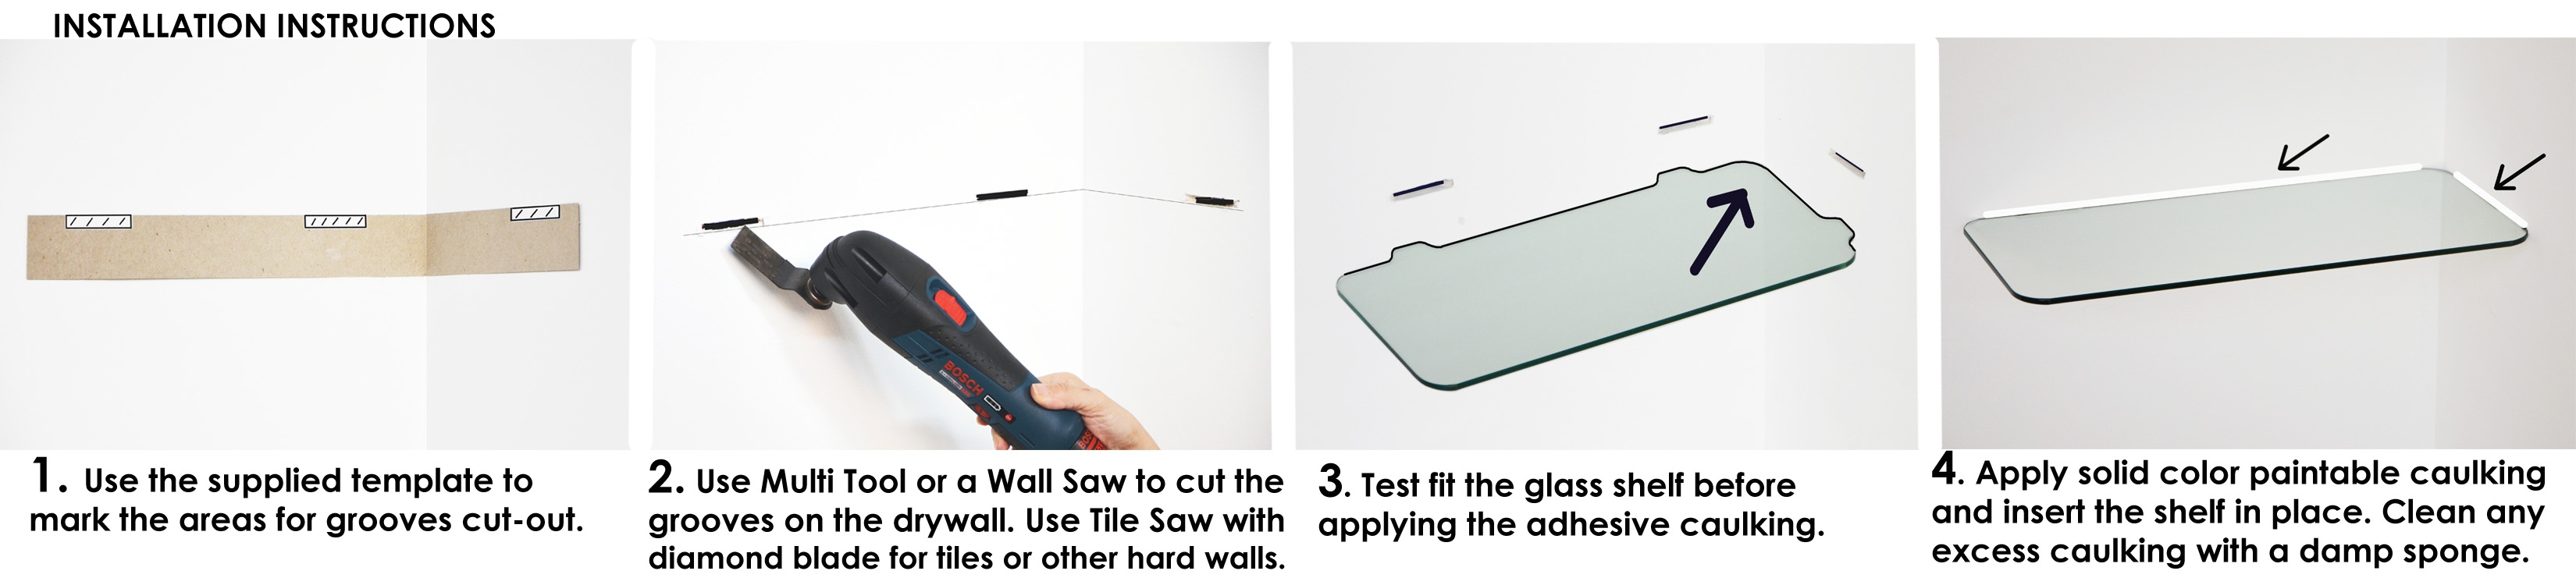 How To Install Floating Shelves Floating Glass Shelves Store Regarding Floating Corner Glass Shelves (#10 of 12)